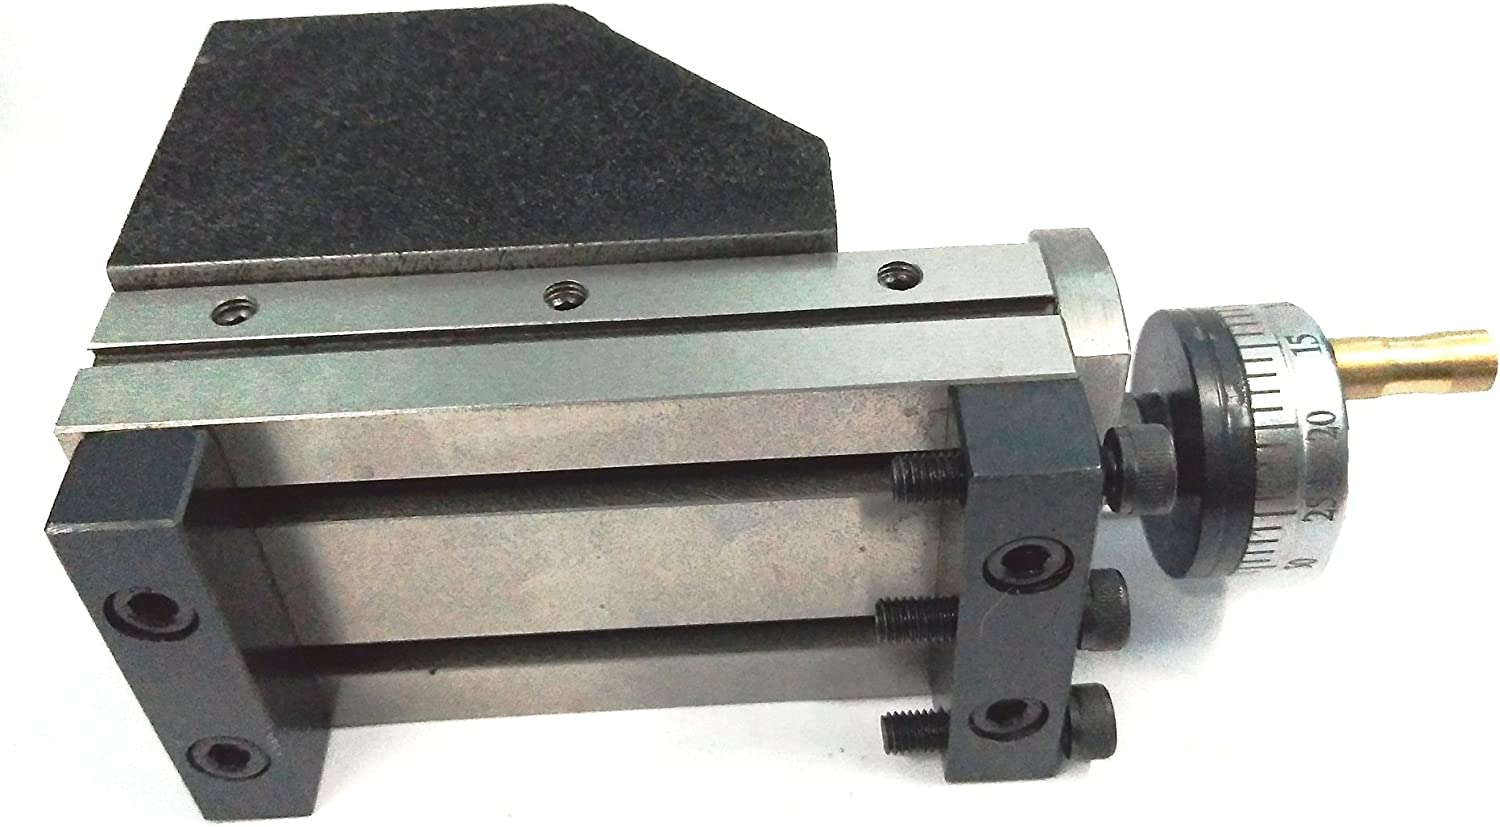 90 x 50 mm Mini Vertical Slide for Instant Milling Operation on Lathe Machine Precision Quality Engineering Accessories Rotary Table Milling Vice Vise Machine Tools